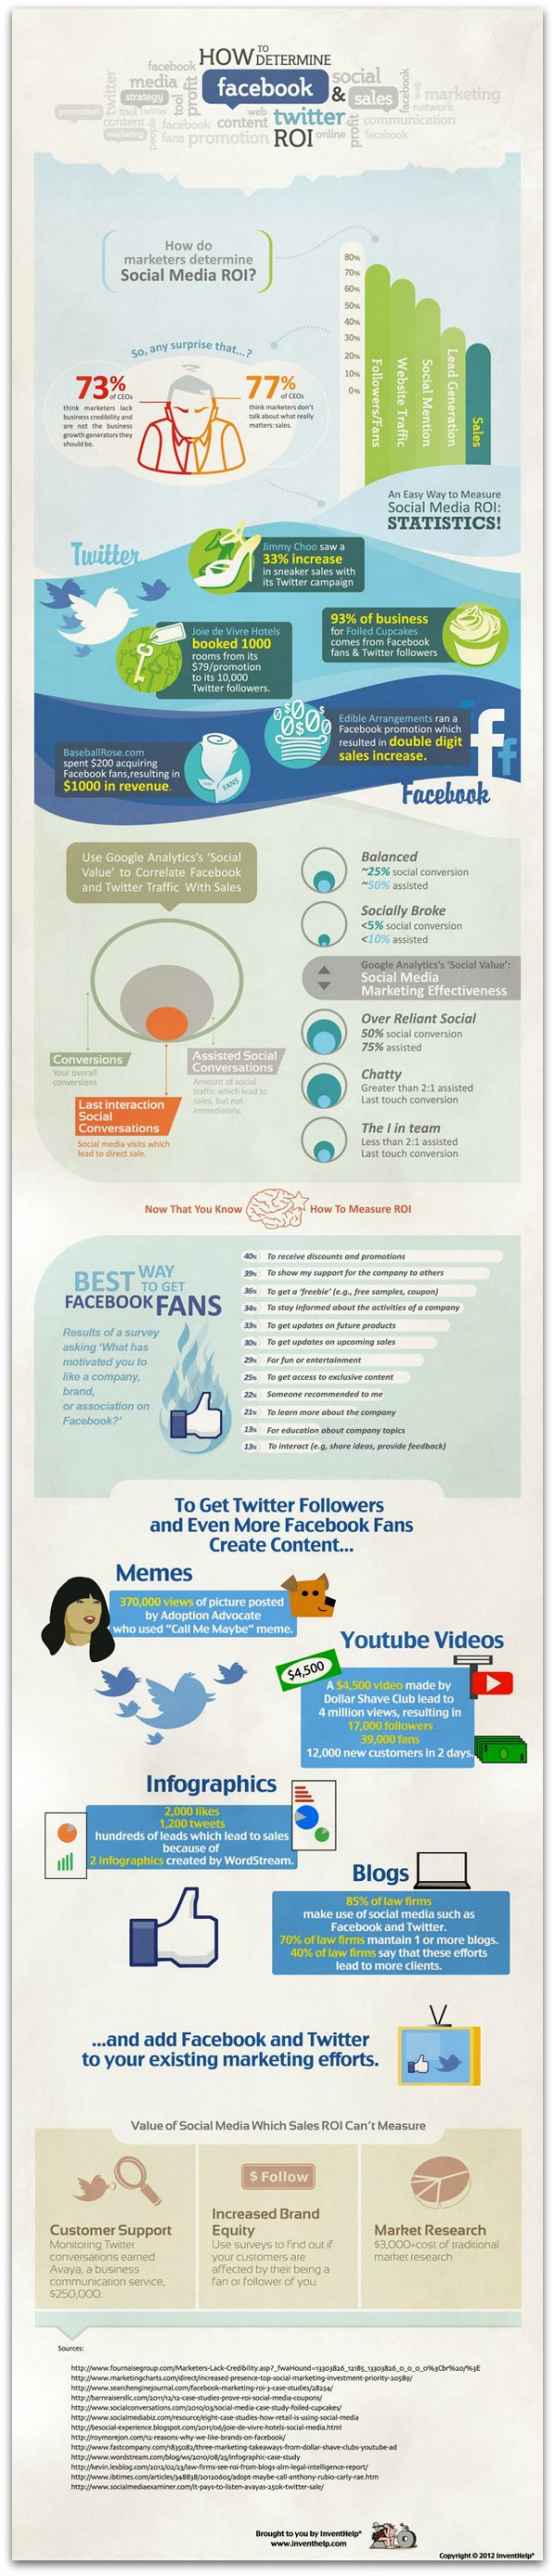 Infographie ROI Facebook Twitter